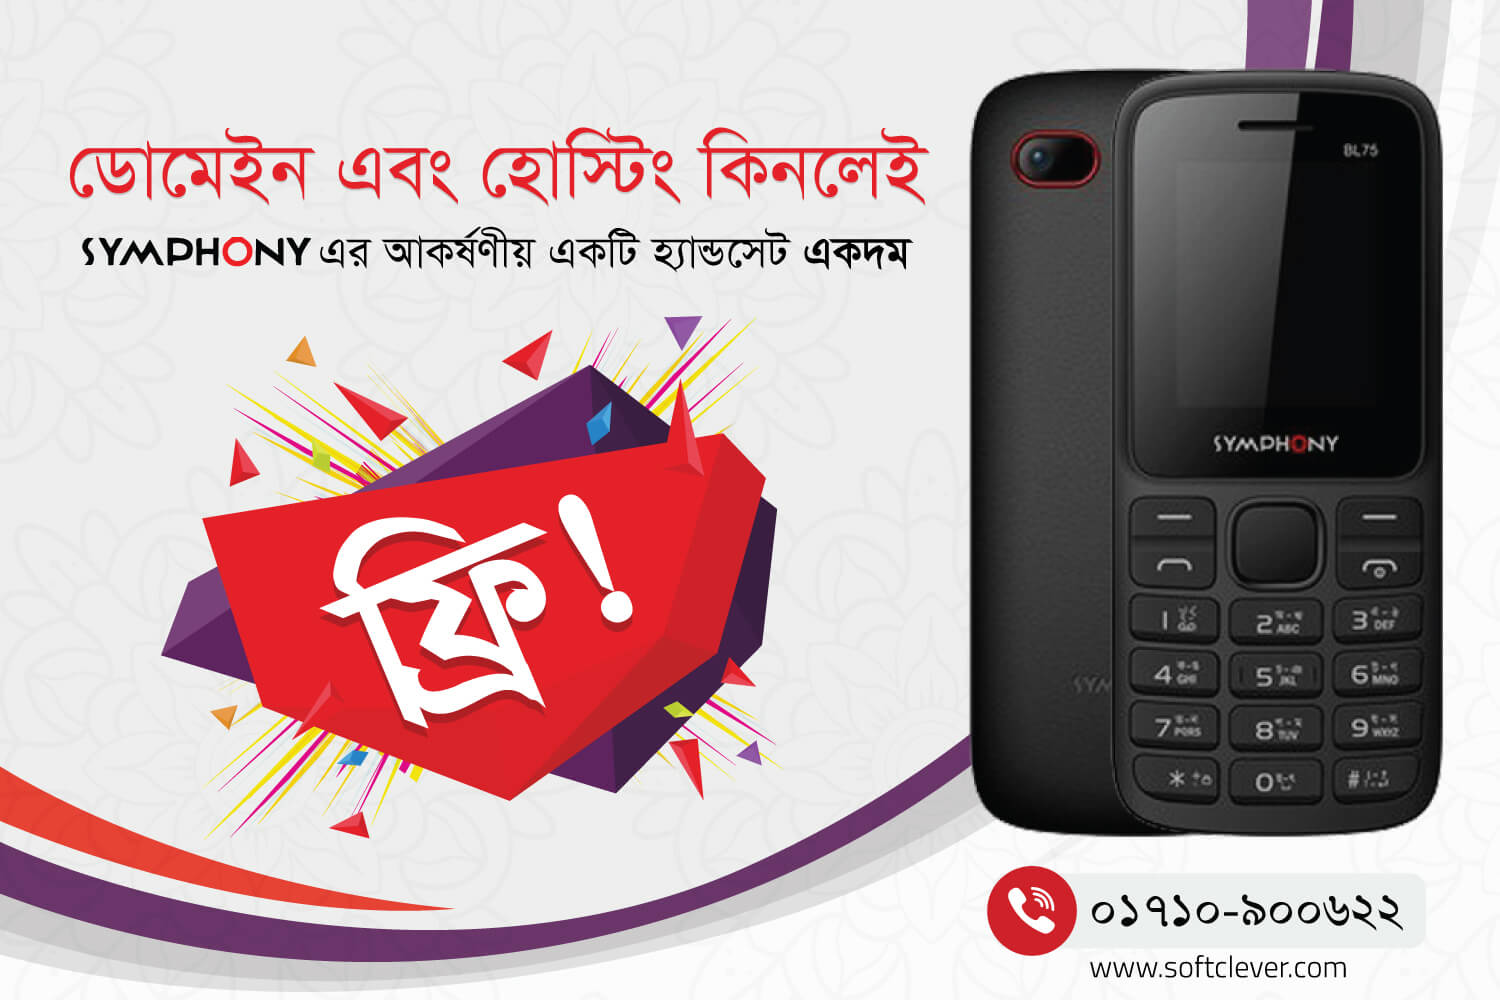 2019 Free Symphony BL75 Mobile Phone with Domain & Hosting Packa